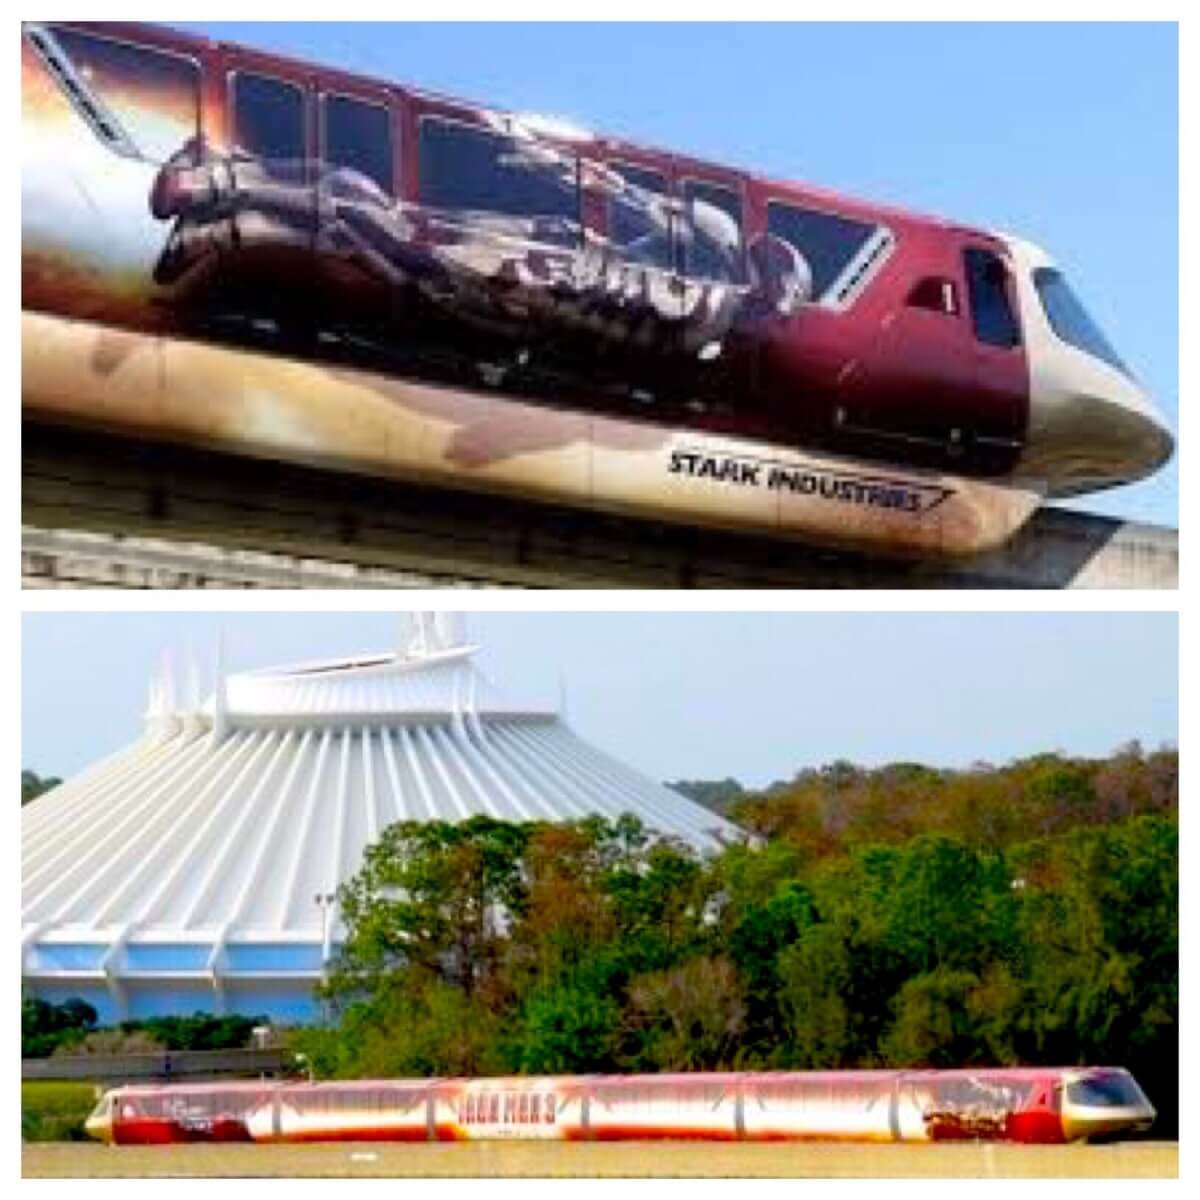 Disney History - Iron Man-orail: Disney World monorail with Iron Man 3 wrap / Stark Industries monorail